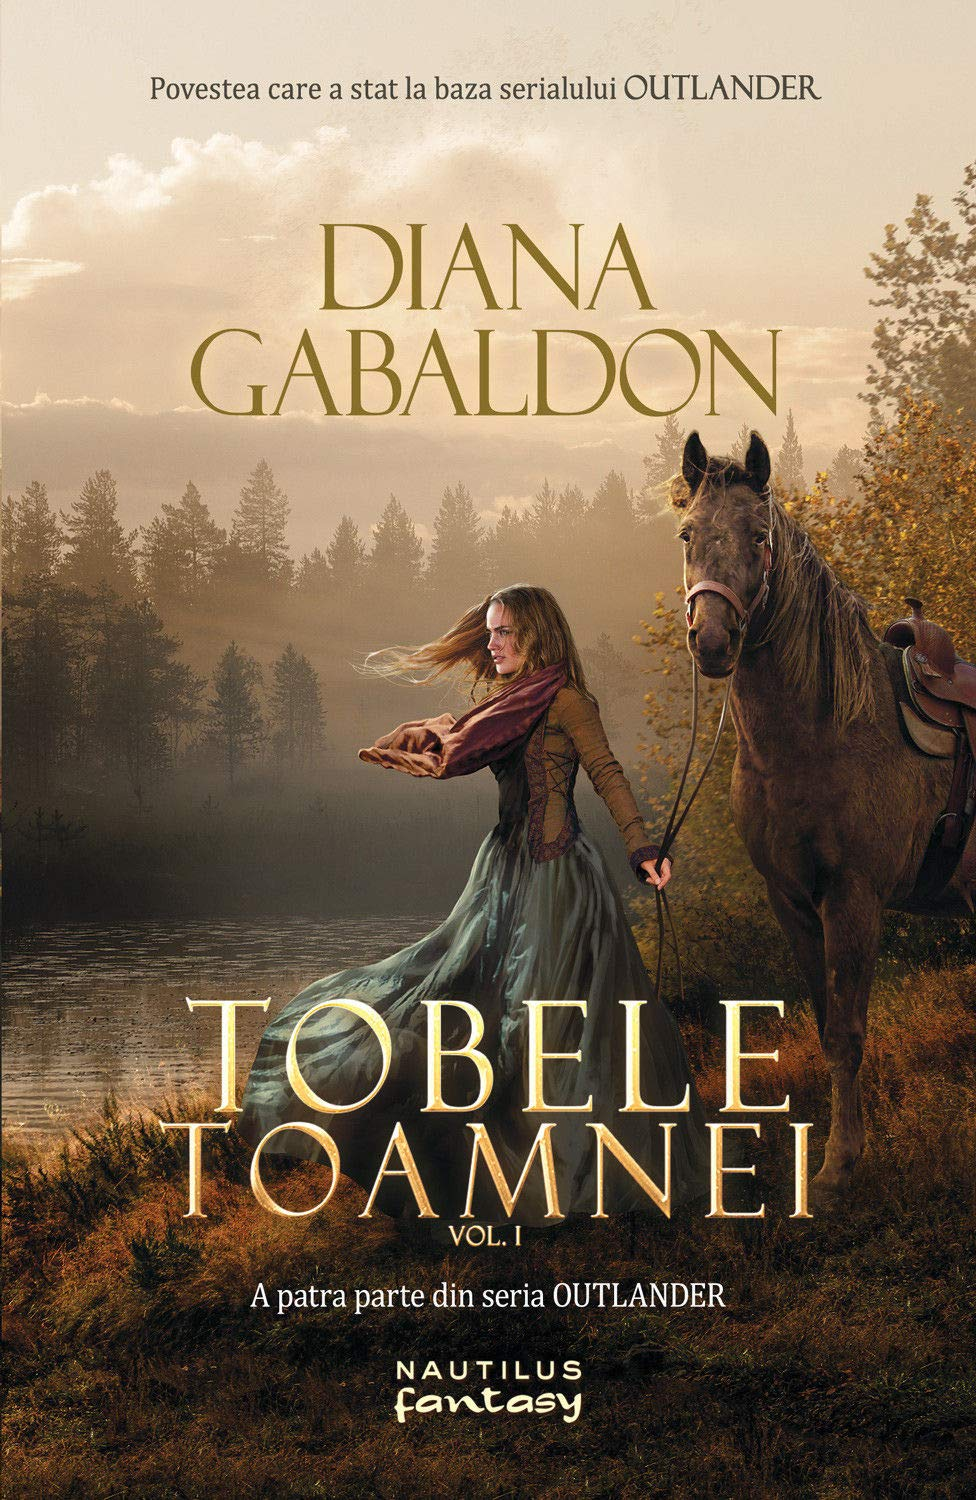 Tobele toamnei vol. 1 (Outlander Book 4)